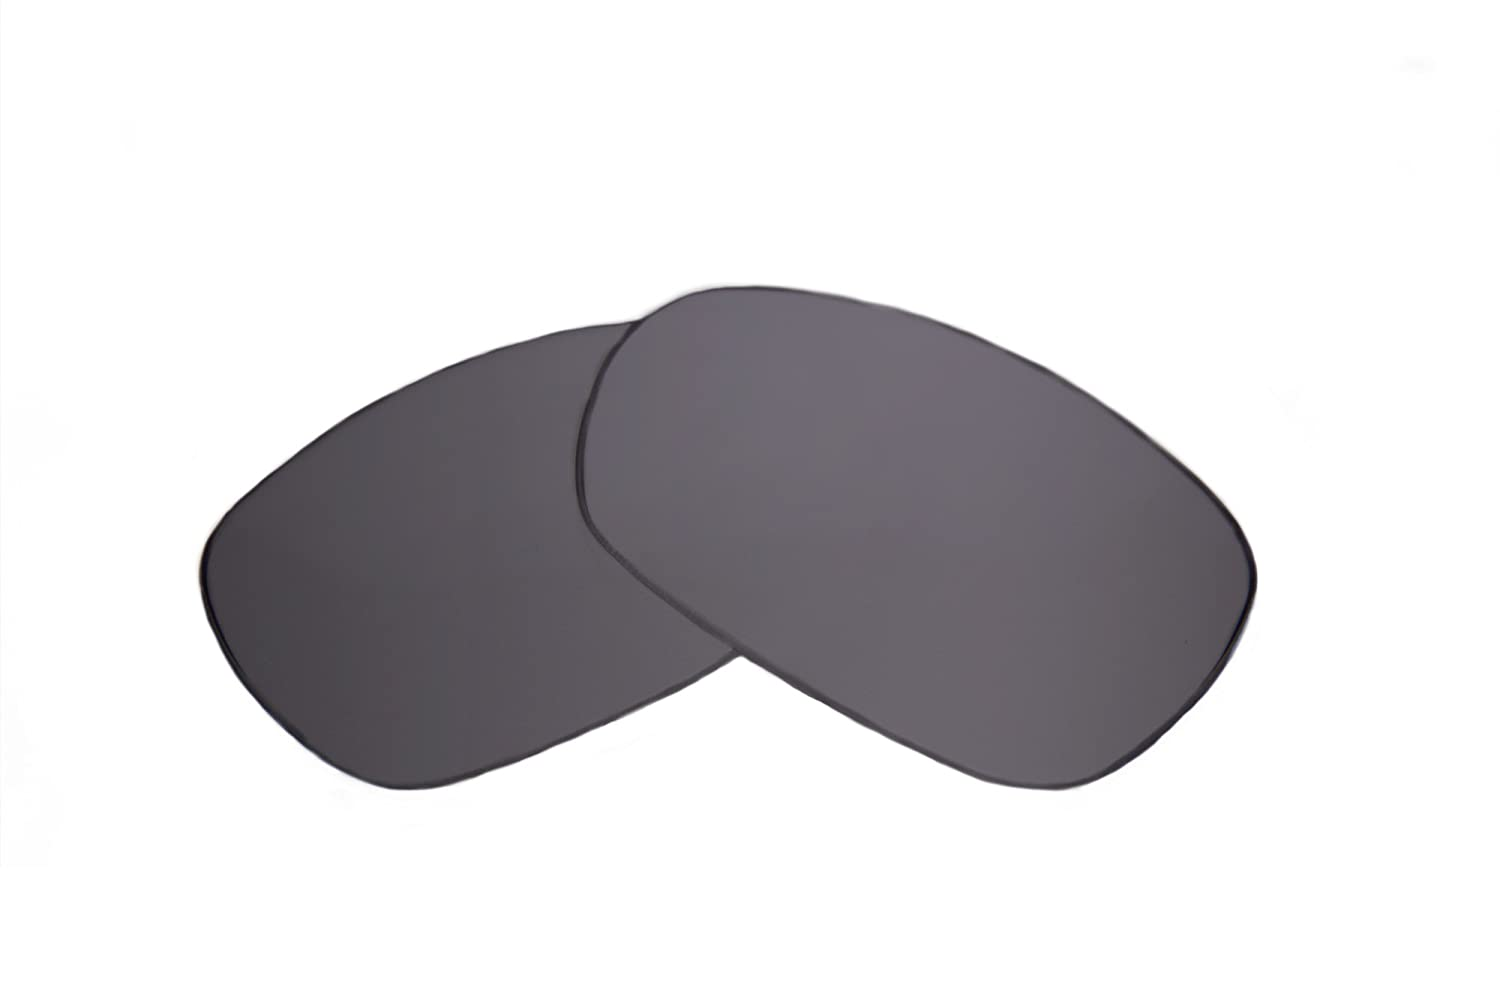 Ultimate Silver Mirror Black Pair-Regular SFx Replacement Sunglass Lenses fits Porsche P8495 64mm Wide